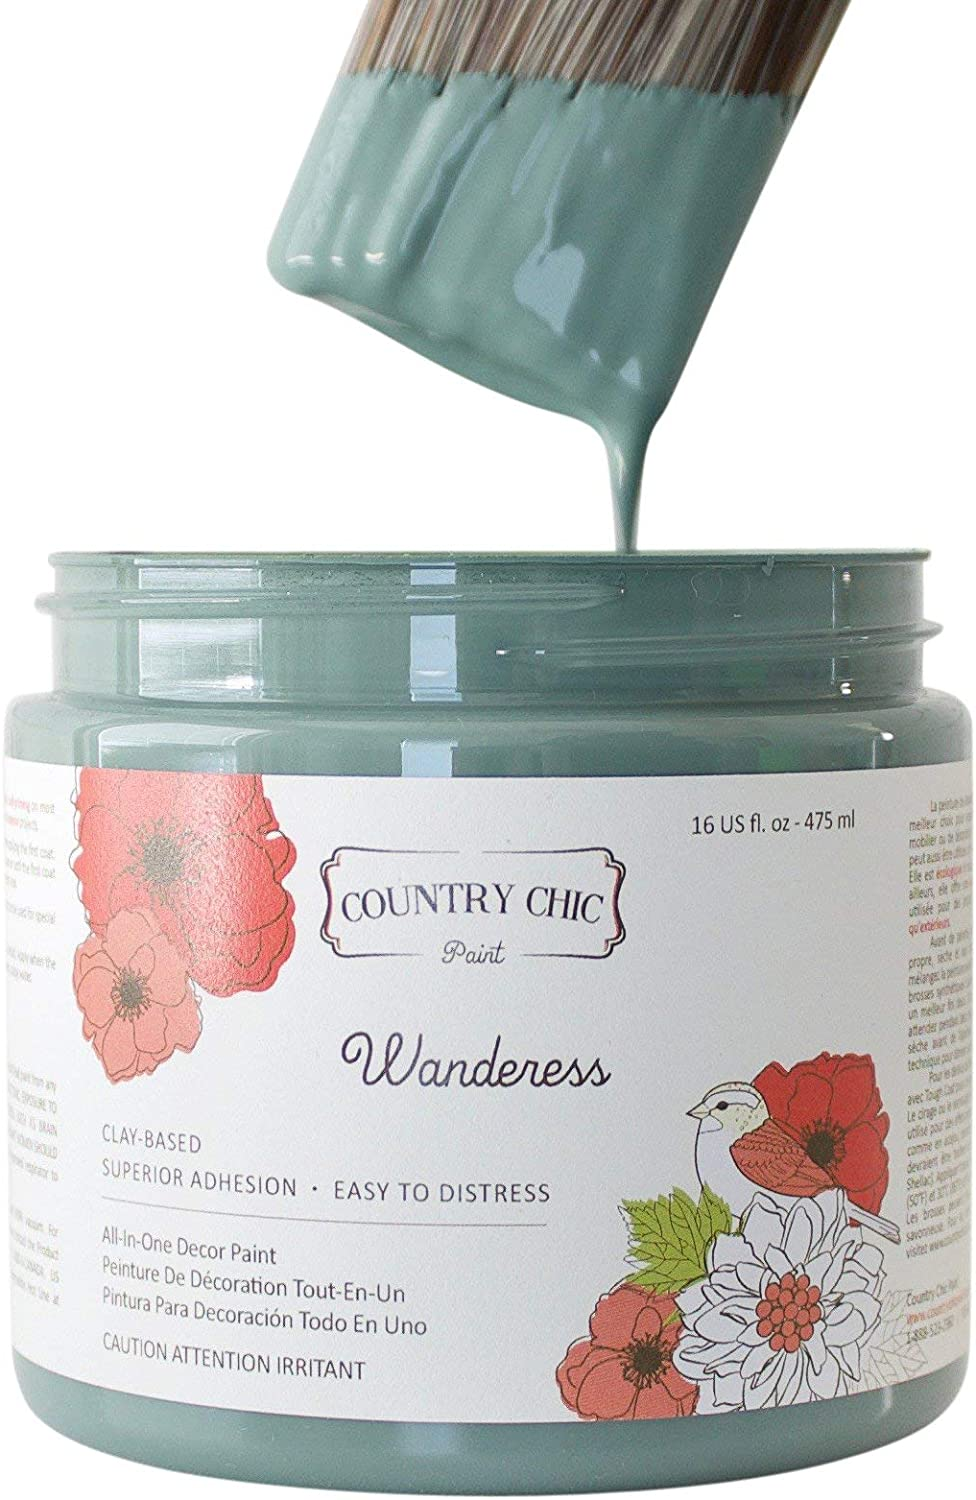 Chalk Style Paint - For Furniture, Home Decor, Crafts - Eco-Friendly - All-In-One - No Wax Needed (Wanderess [teal], Pint (16 oz))